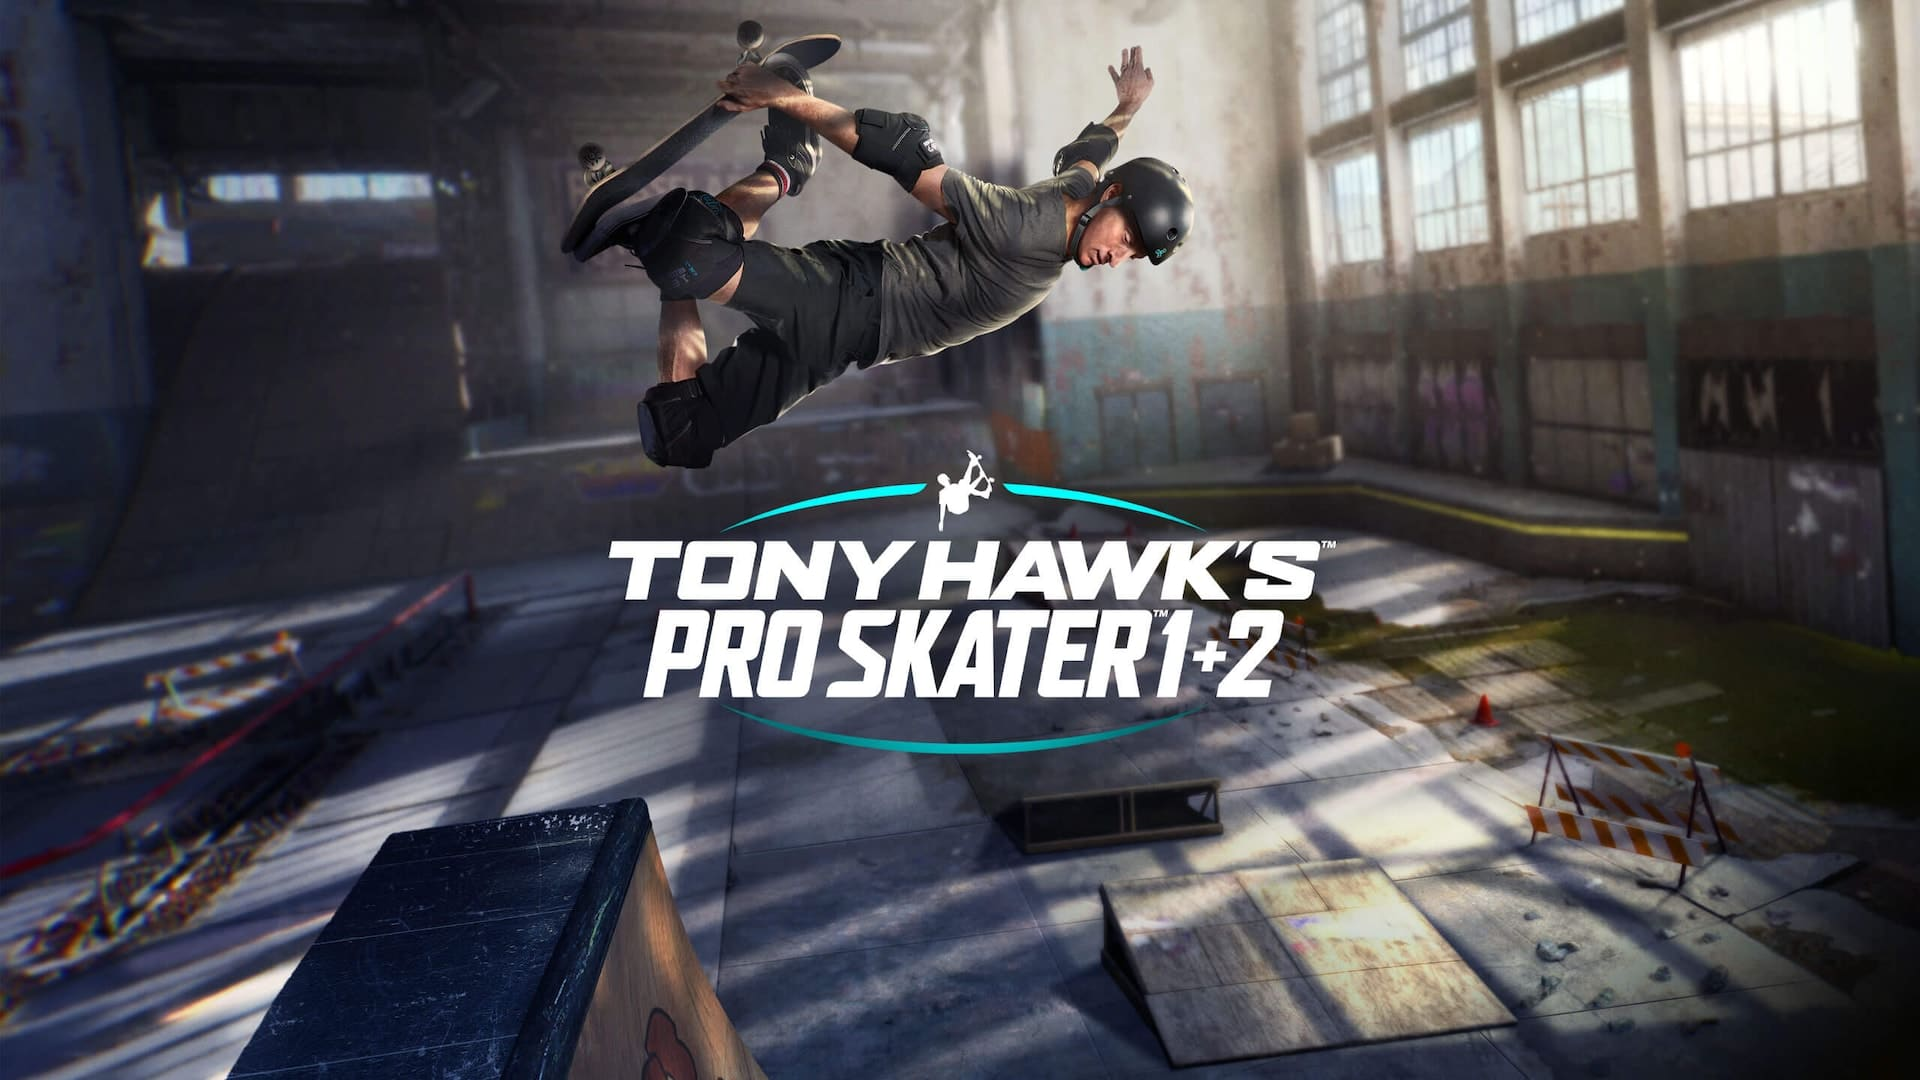 Tony Hawk's Pro Skater 1+2 Is A Kick-Flip Of Nostalgia To The Face